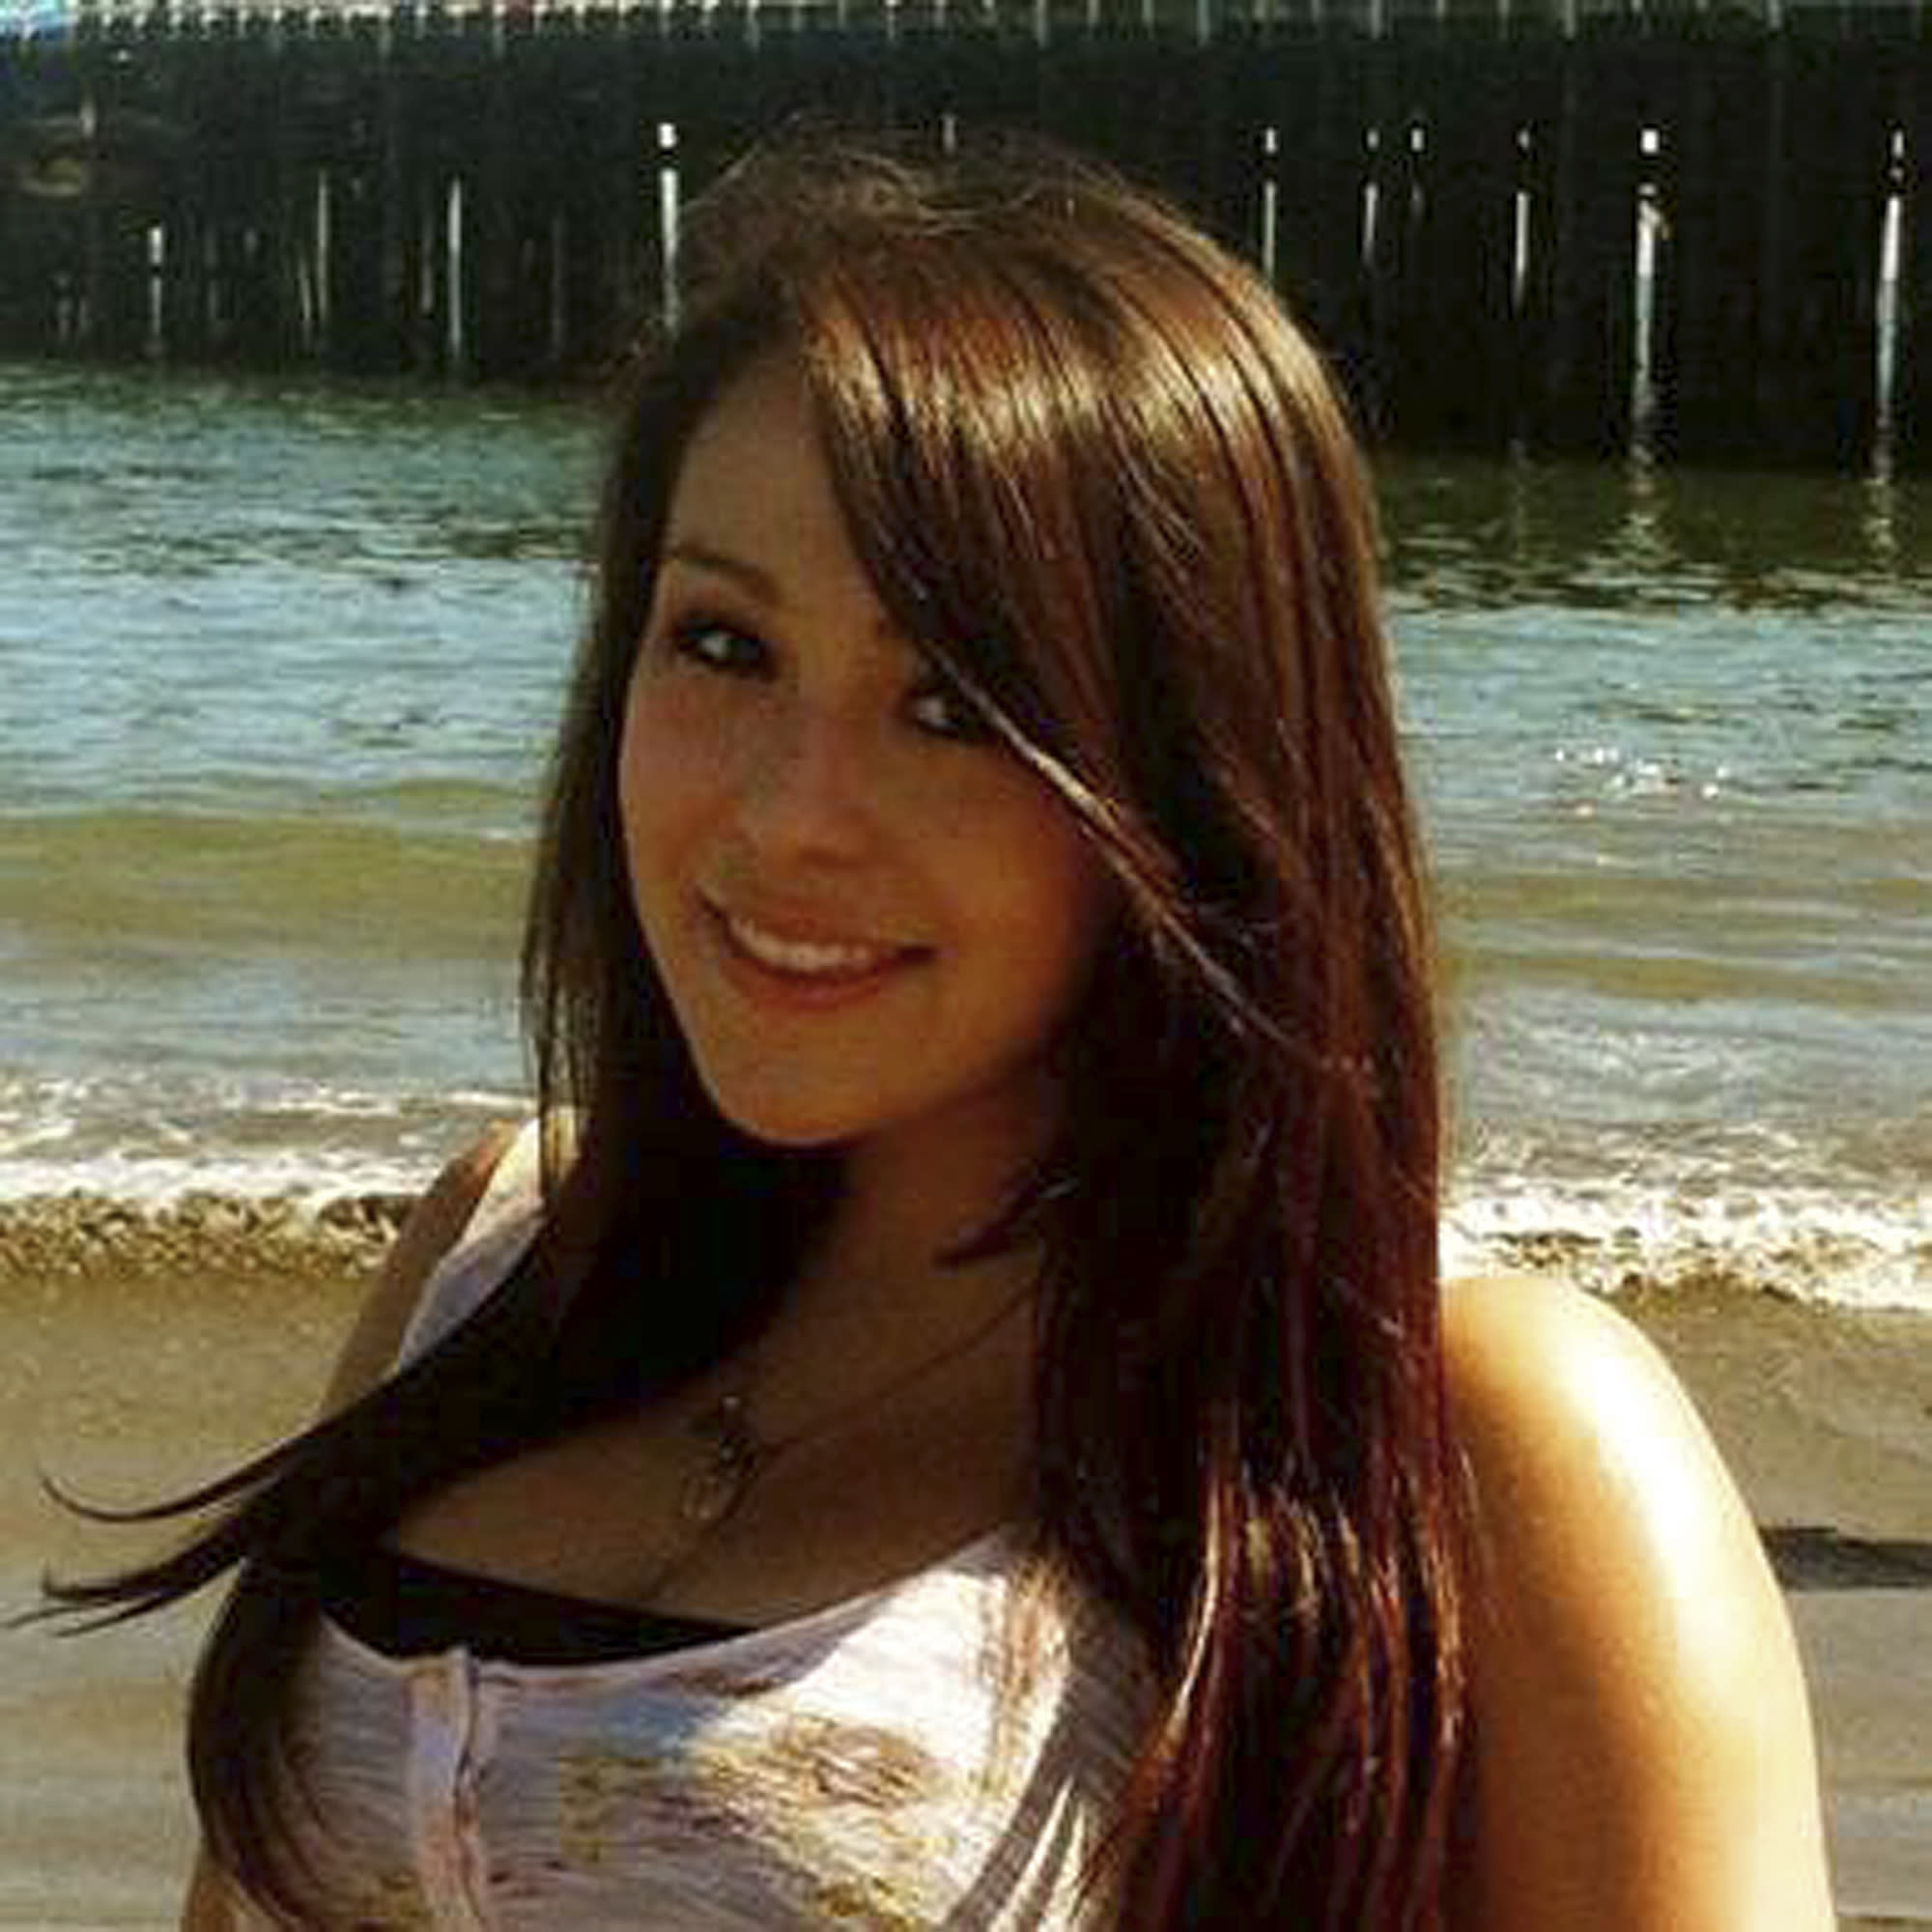 This undated photo provided by her family via attorney Robert Allard shows Audrie Pott. A Northern California sheriff's office has arrested three 16-year-old boys on accusations that they sexually battered the 15-year-old girl who hanged herself eight days after the attack last fall. Santa Clara County Sheriff's spokesman Lt. Jose Cardoza says the teens were arrested Thursday, April 11, 2013, two at Saratoga High School and a third at Christopher High School in Gilroy. (AP Photo/Family photo provided by attorney Robert Allard) NO SALES MAGS OUT FOR EDITORIAL USE ONLY